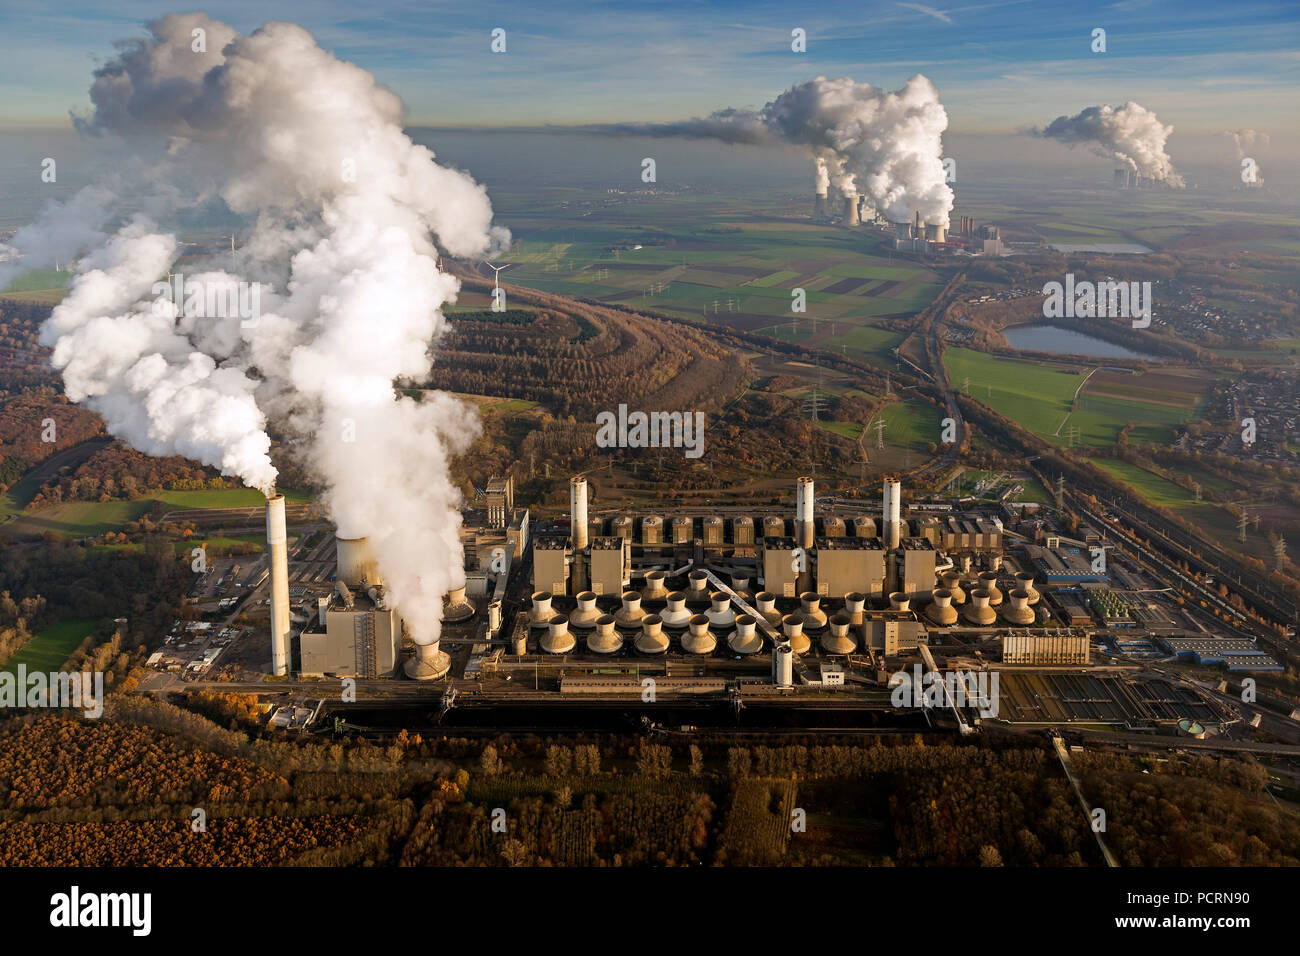 Brown coal power station, smoke, steam, power generation, aerial view of Grevenbroich, Lower Rhine - Stock Image